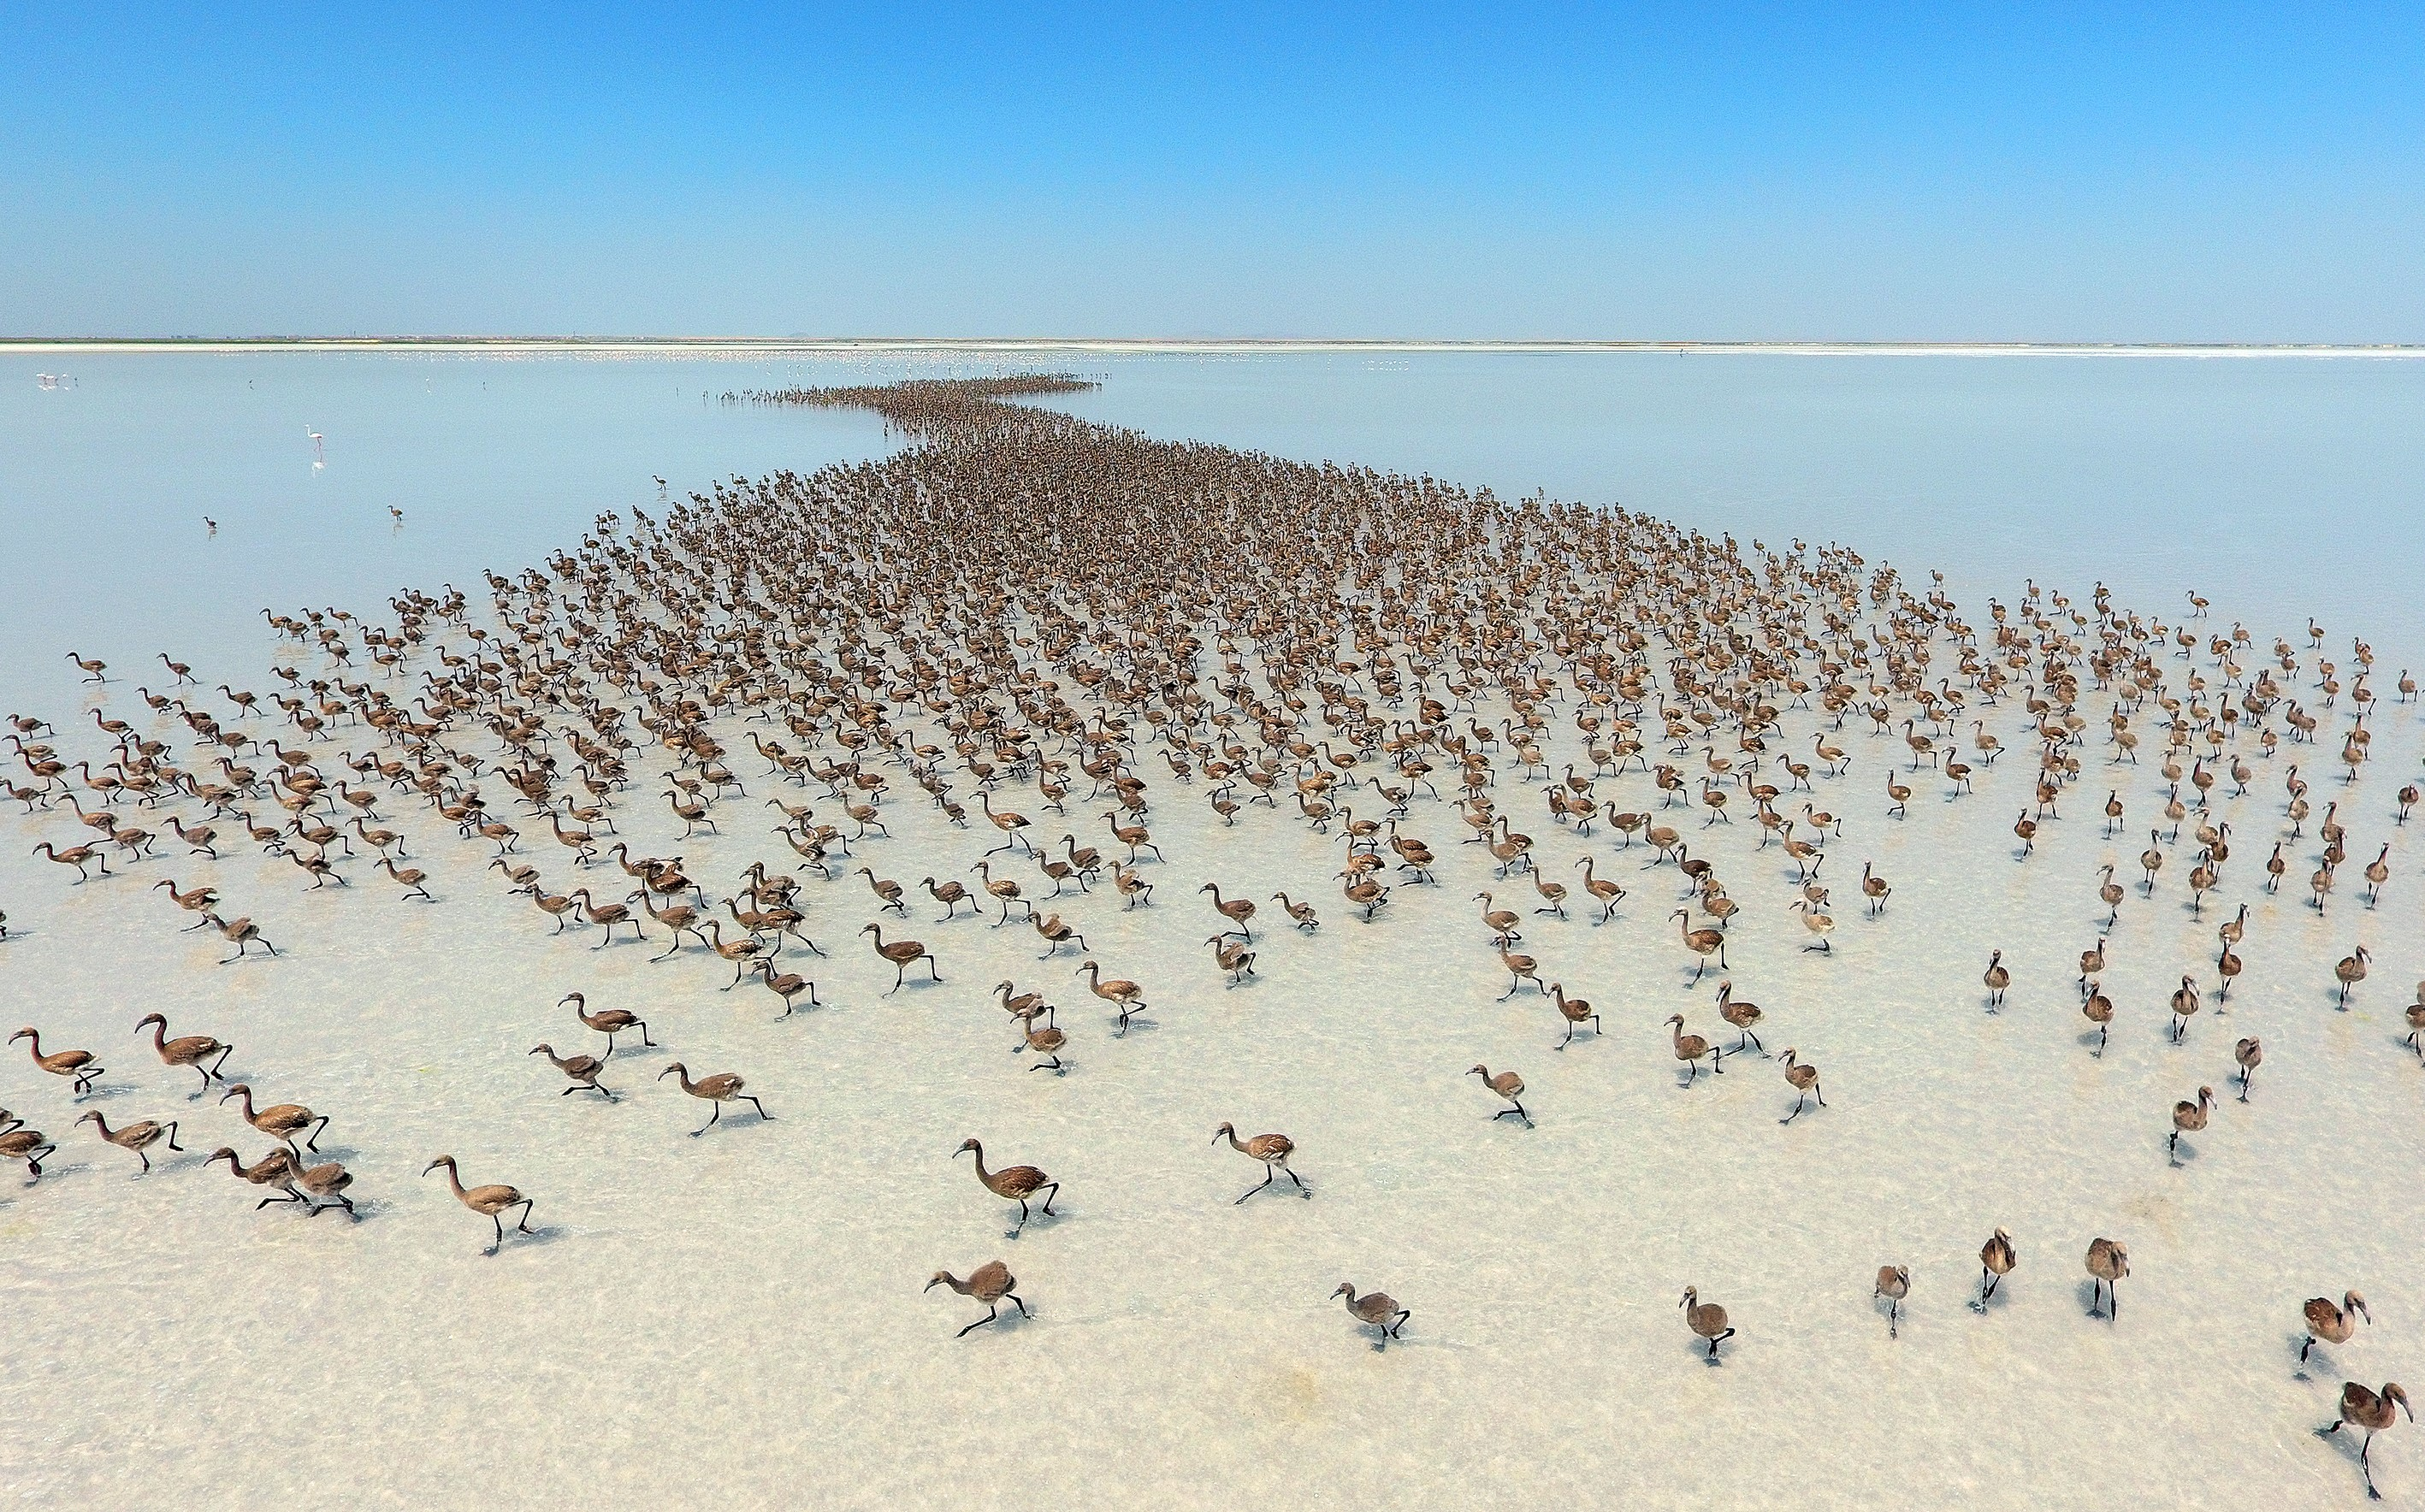 Flamingos are seen after thousands of flamingo chicks have emerged from their nests at Lake Tuz in Turkey on June 28, 2016.